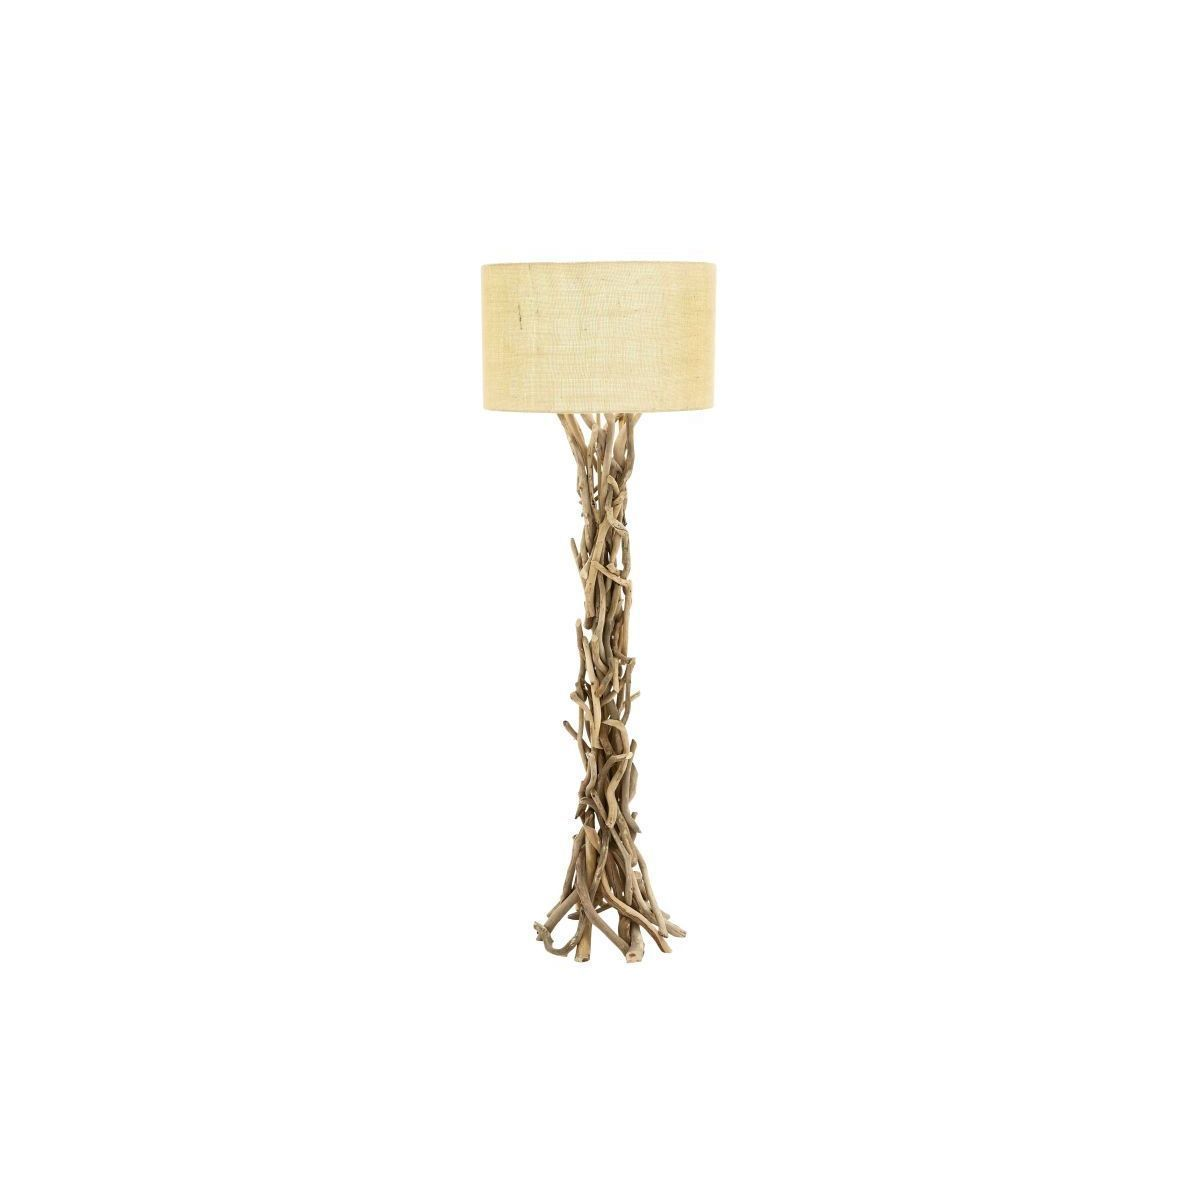 theme for floor ideas furniture pin driftwood of unique lamp decorative vintage home